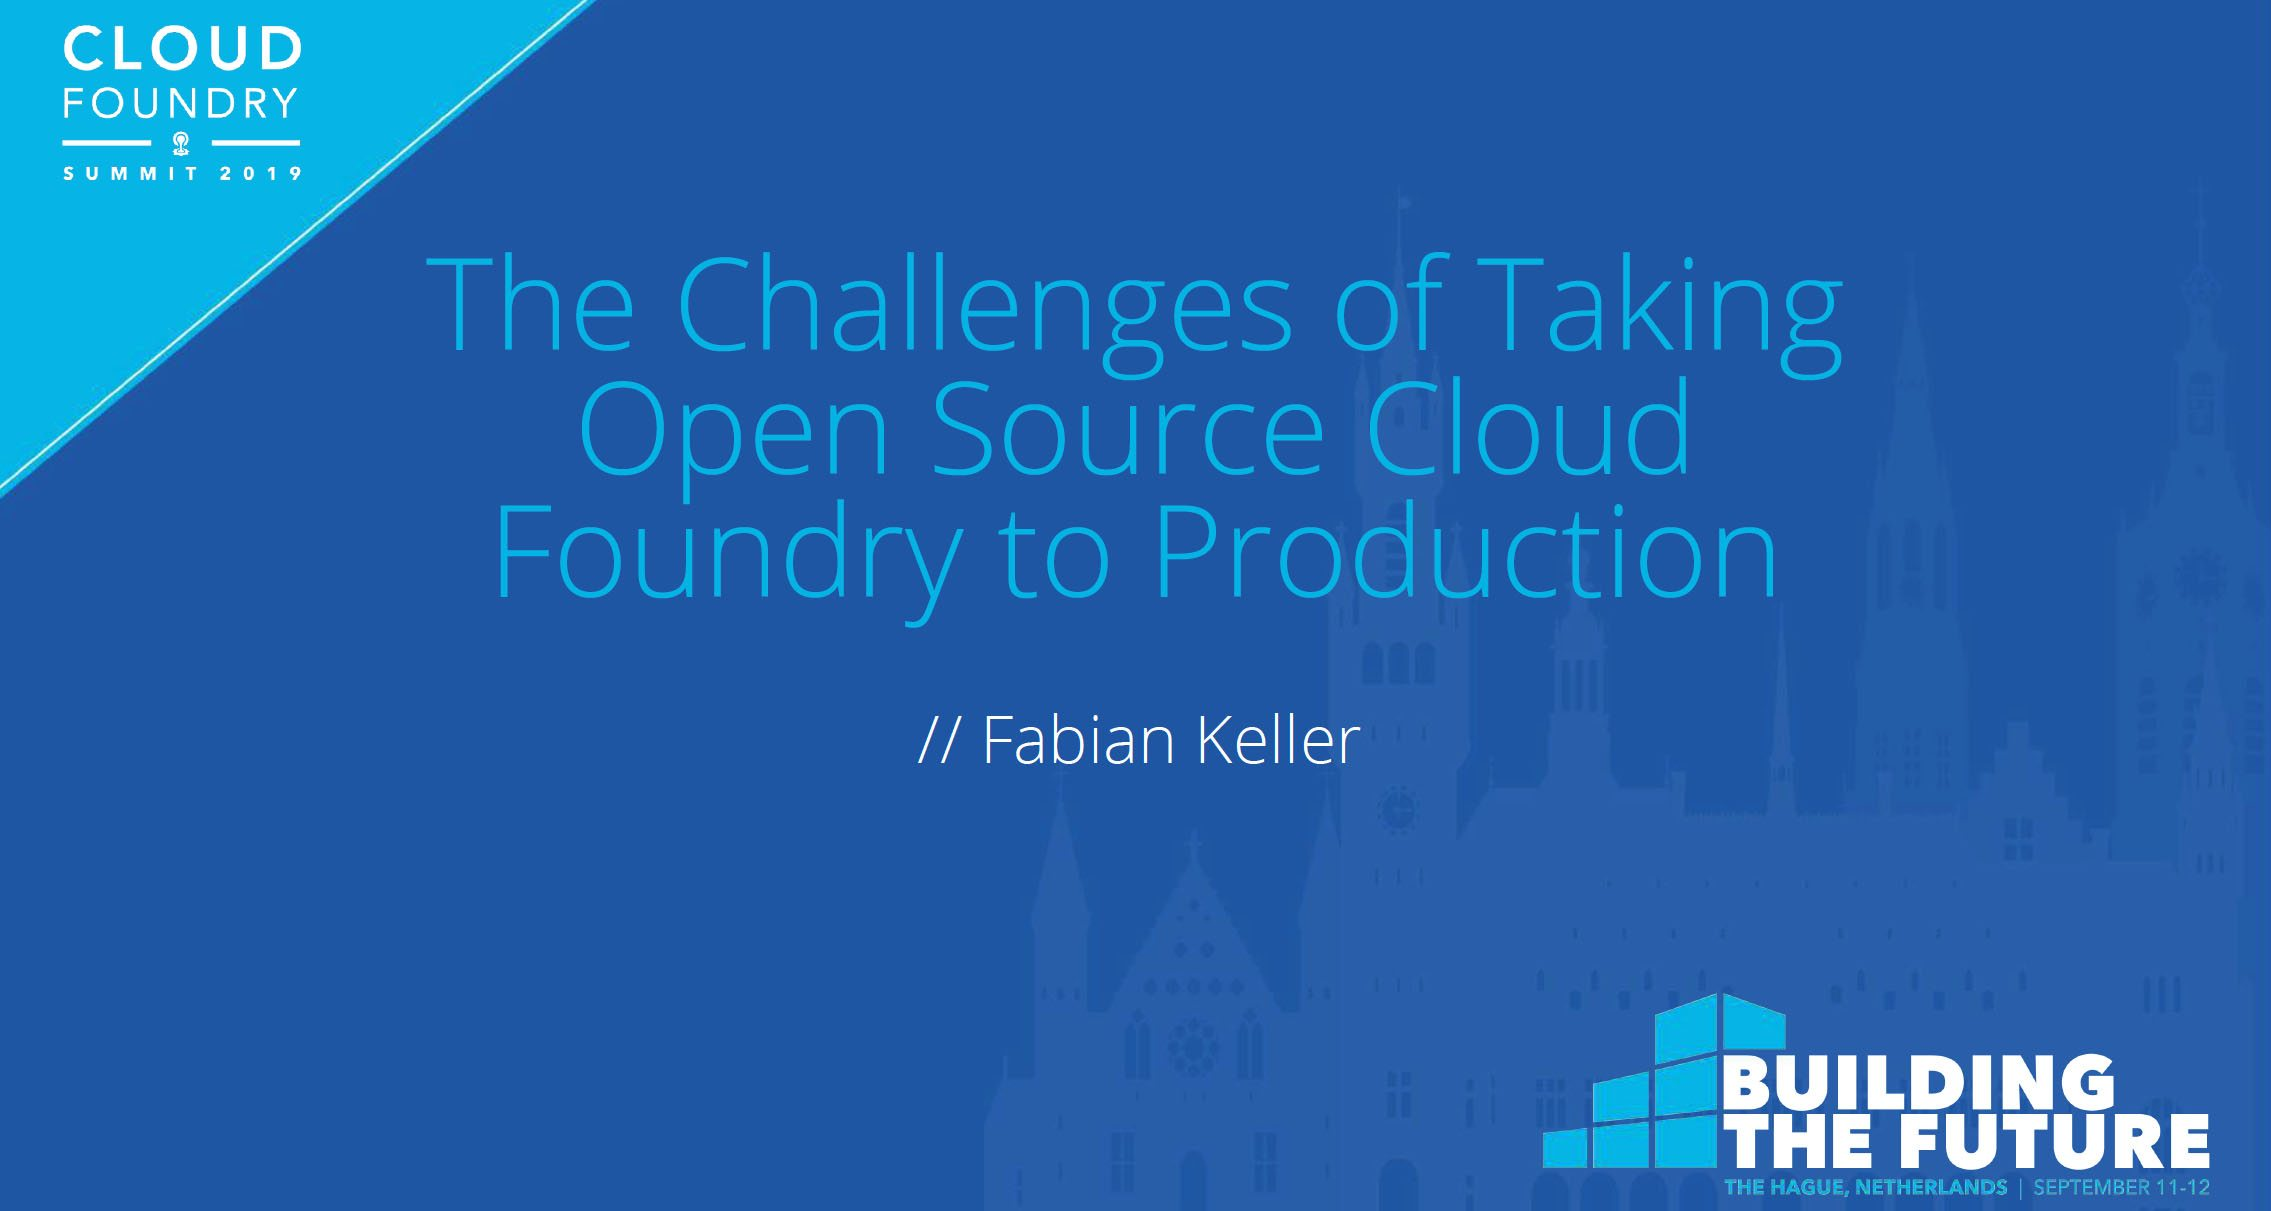 The Challenges of Taking Open Source Cloud Foundry to Production